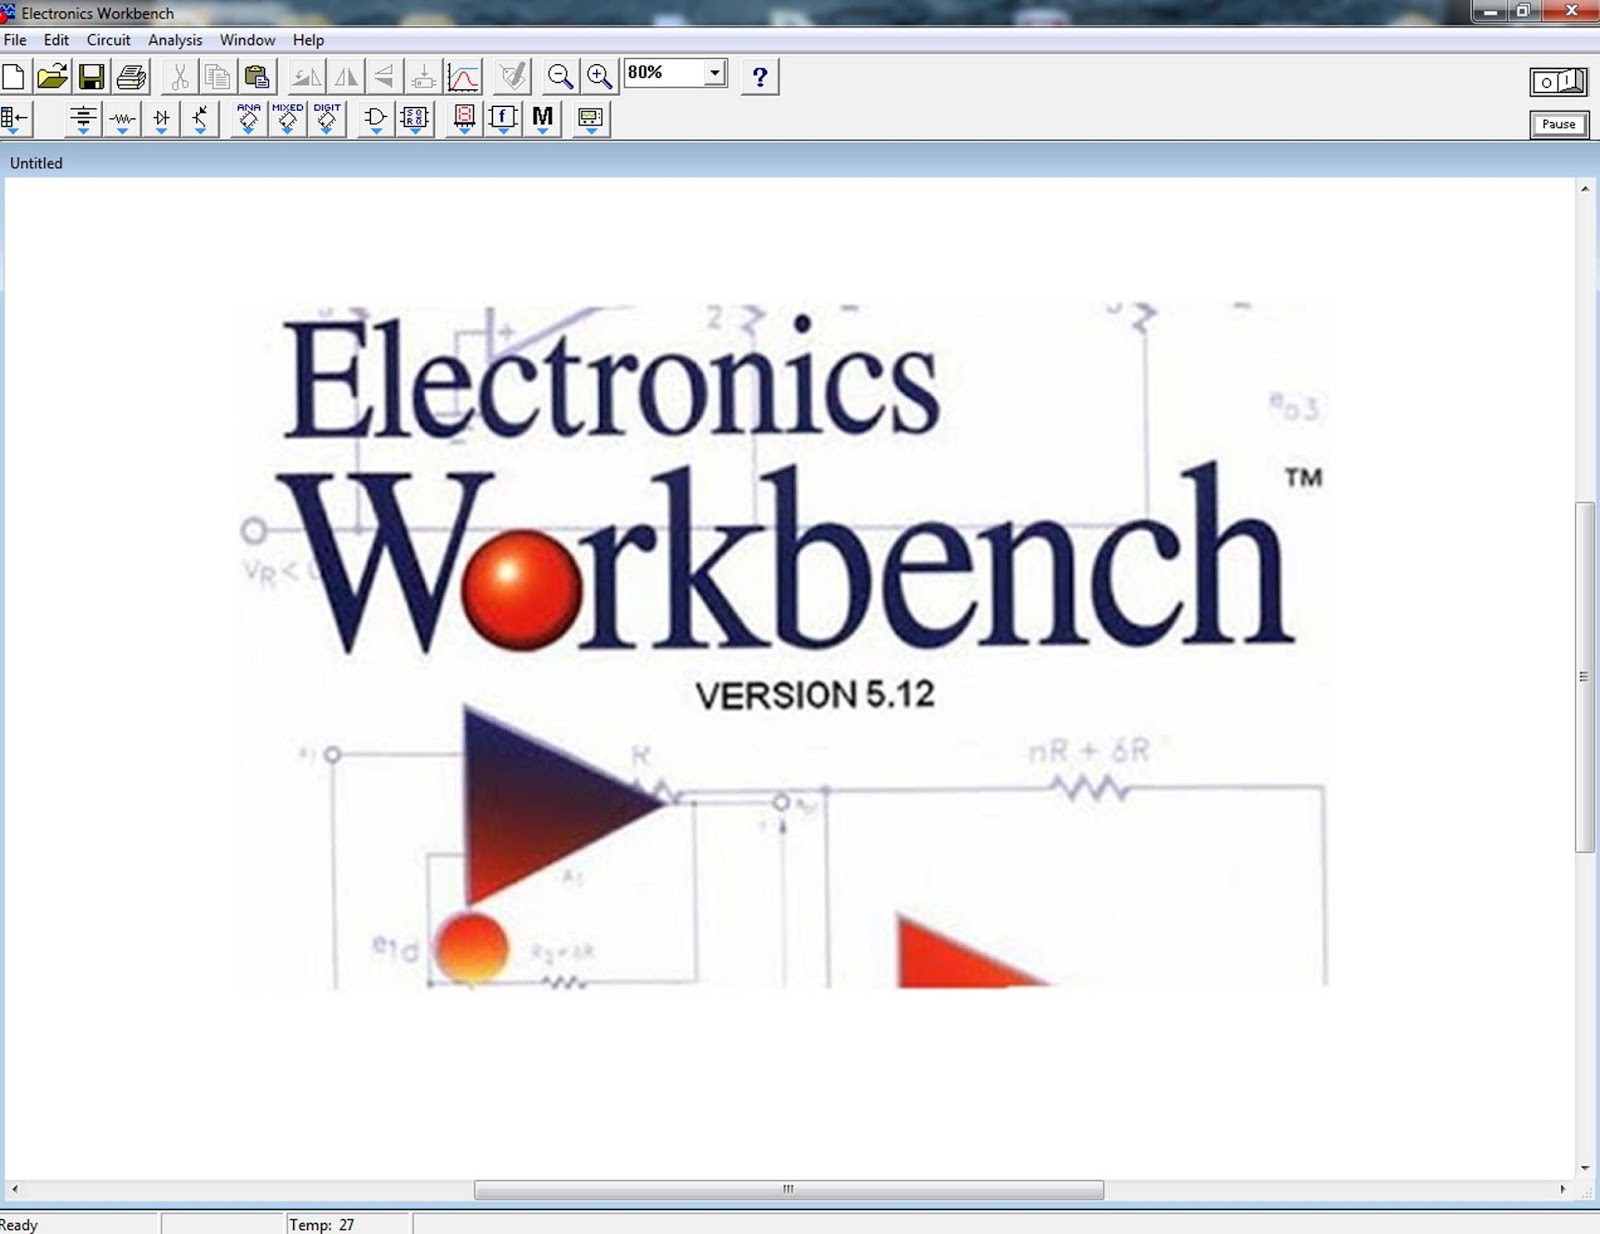 WORKBENCH ELECTRONIQUE GRATUIT TÉLÉCHARGER 01NET